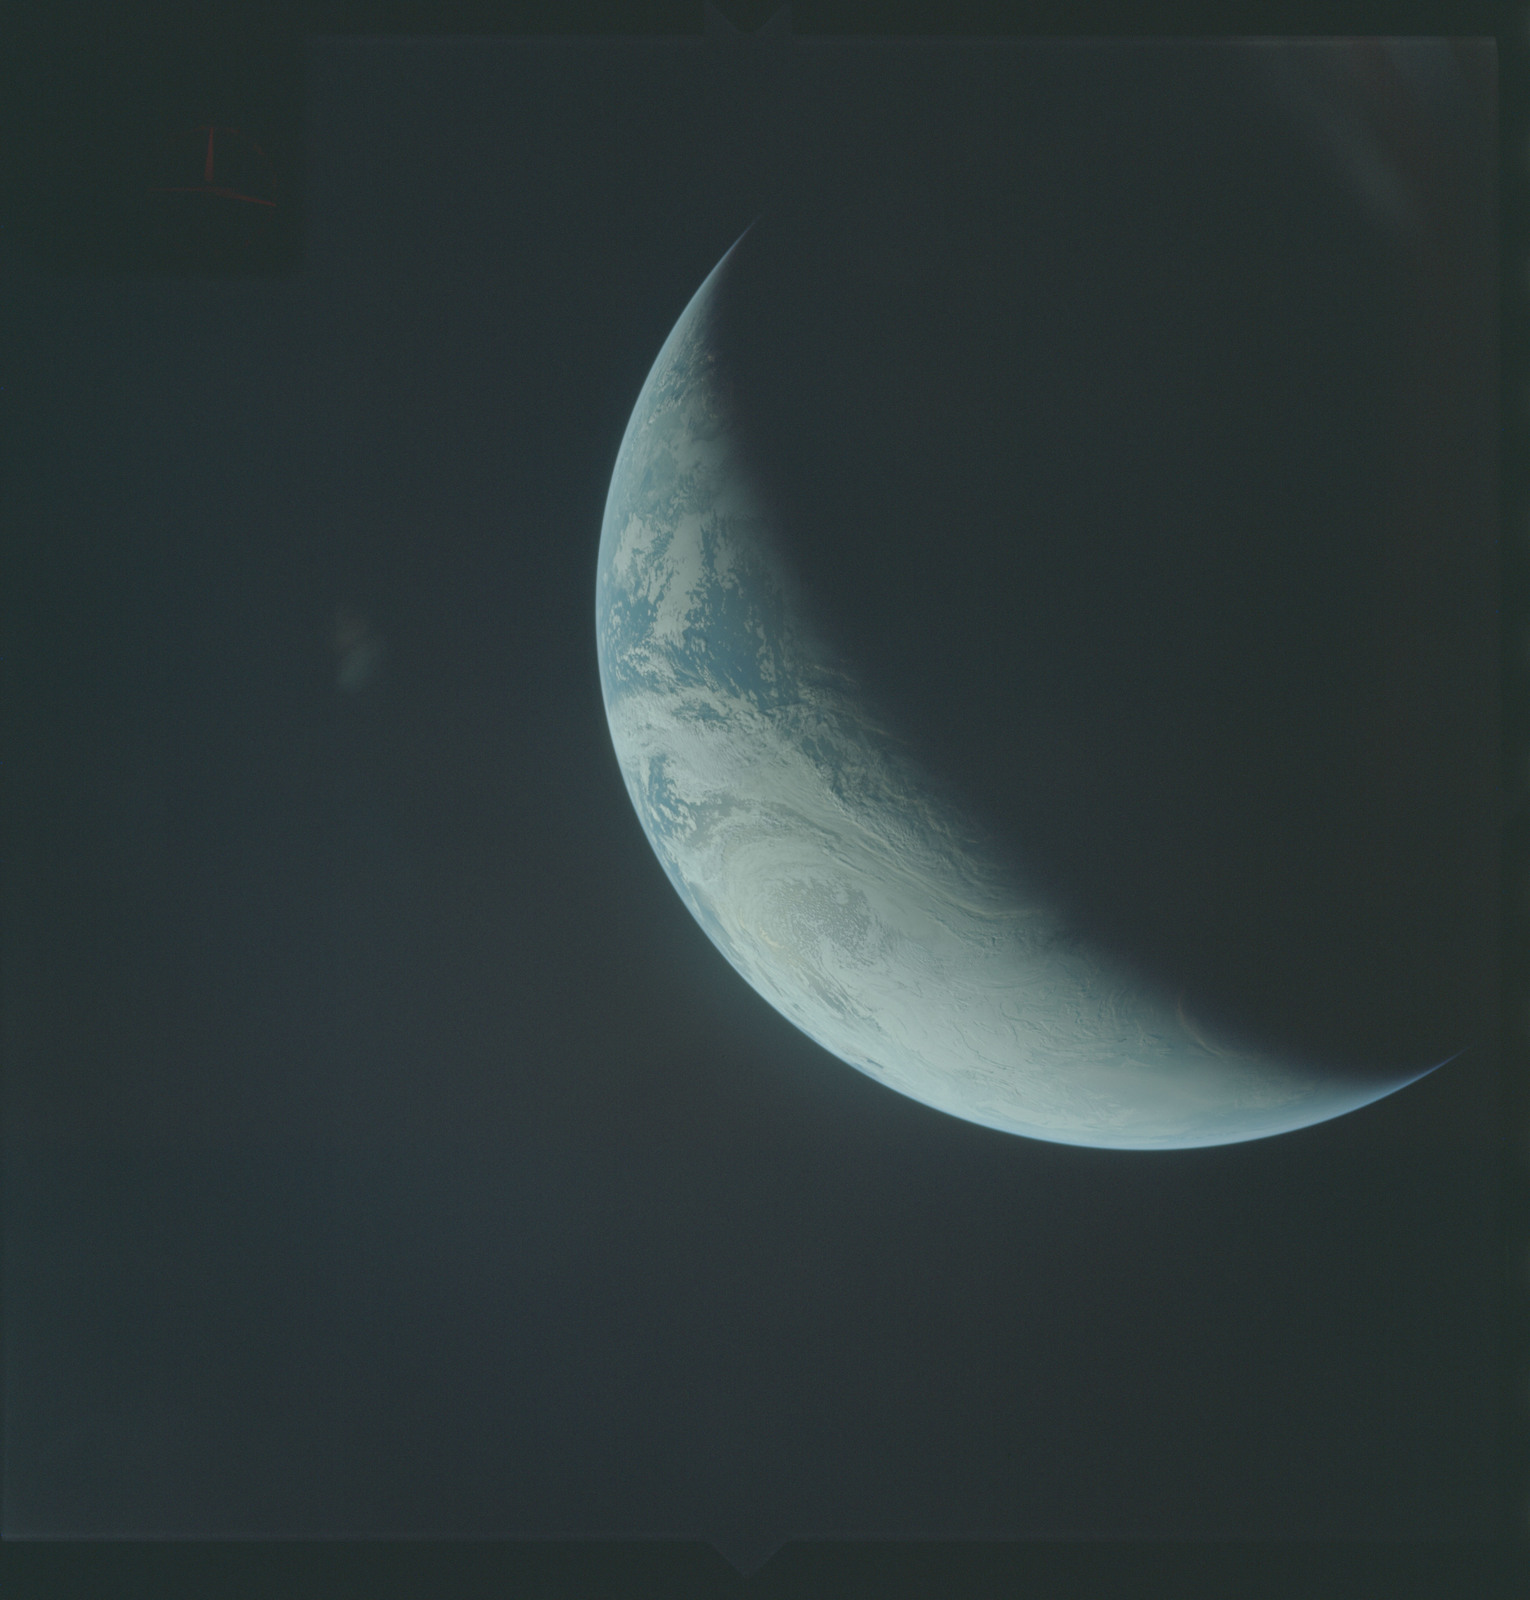 AS04-01-440 - Apollo 4 - Apollo 4 Mission - Atlantic Ocean,coastal Brazil,West Africa and Antarctica